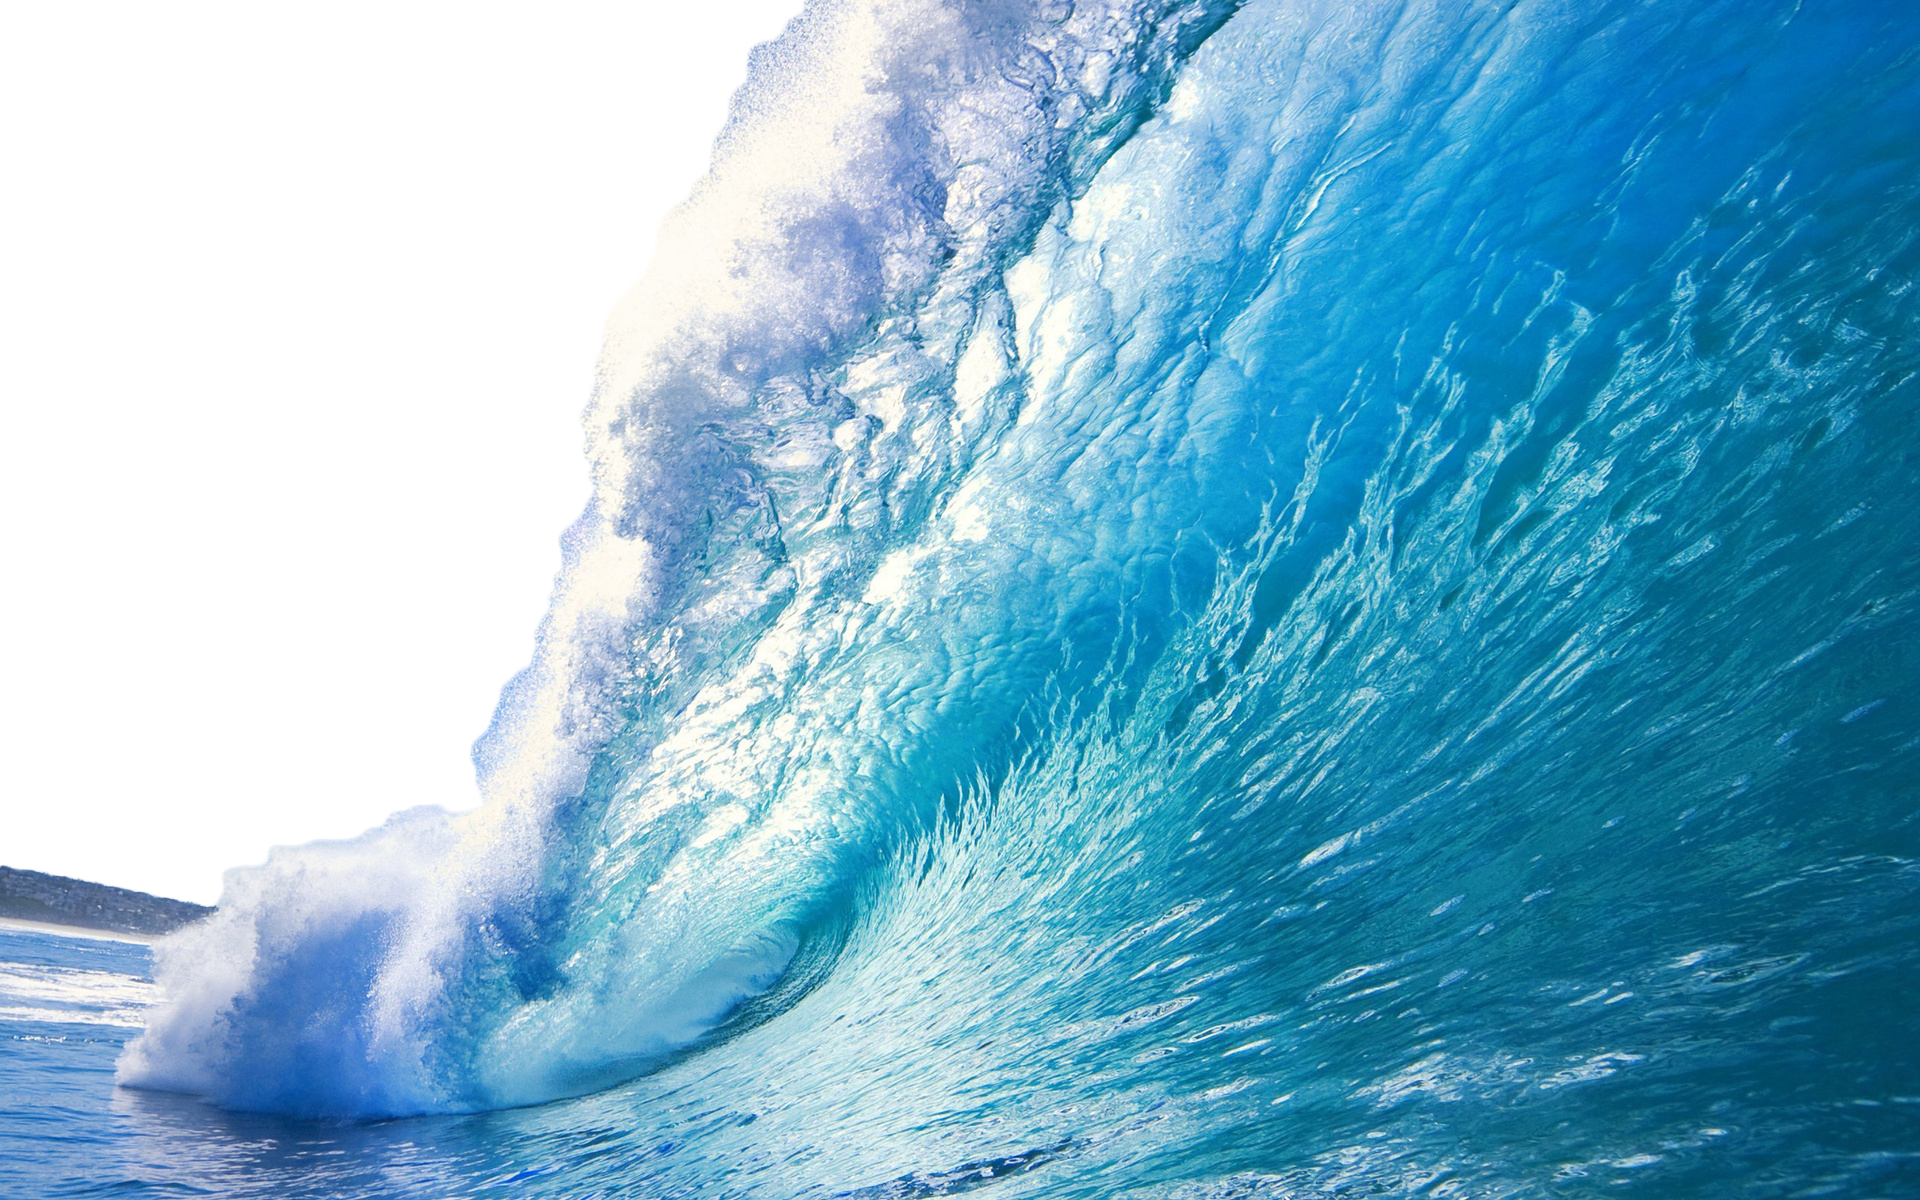 Sea With Wave PNG Image.